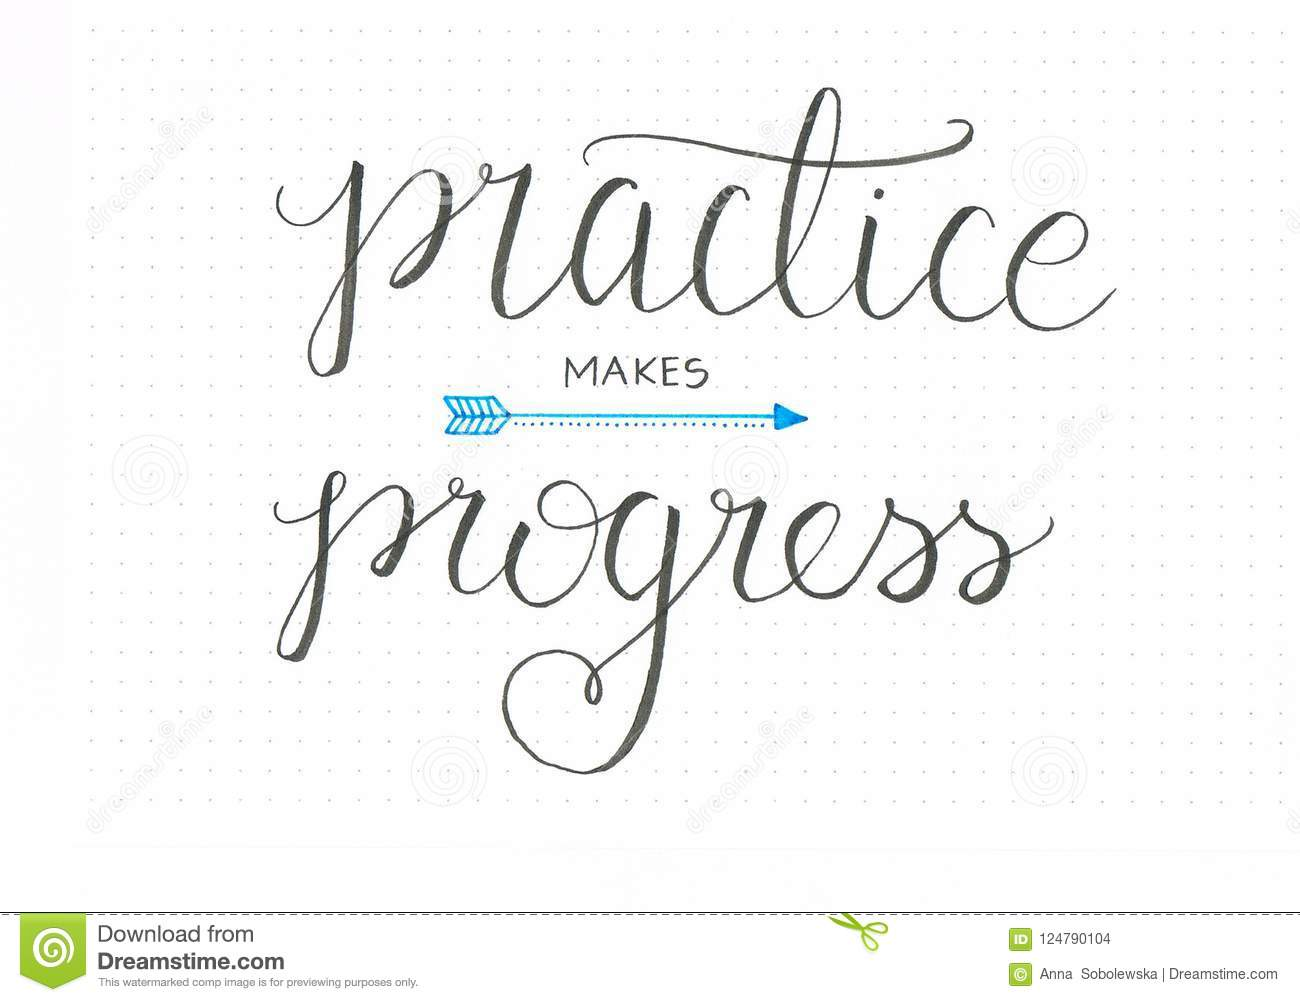 `Practise makes progress` honest hand lettering saying in black with an arrow